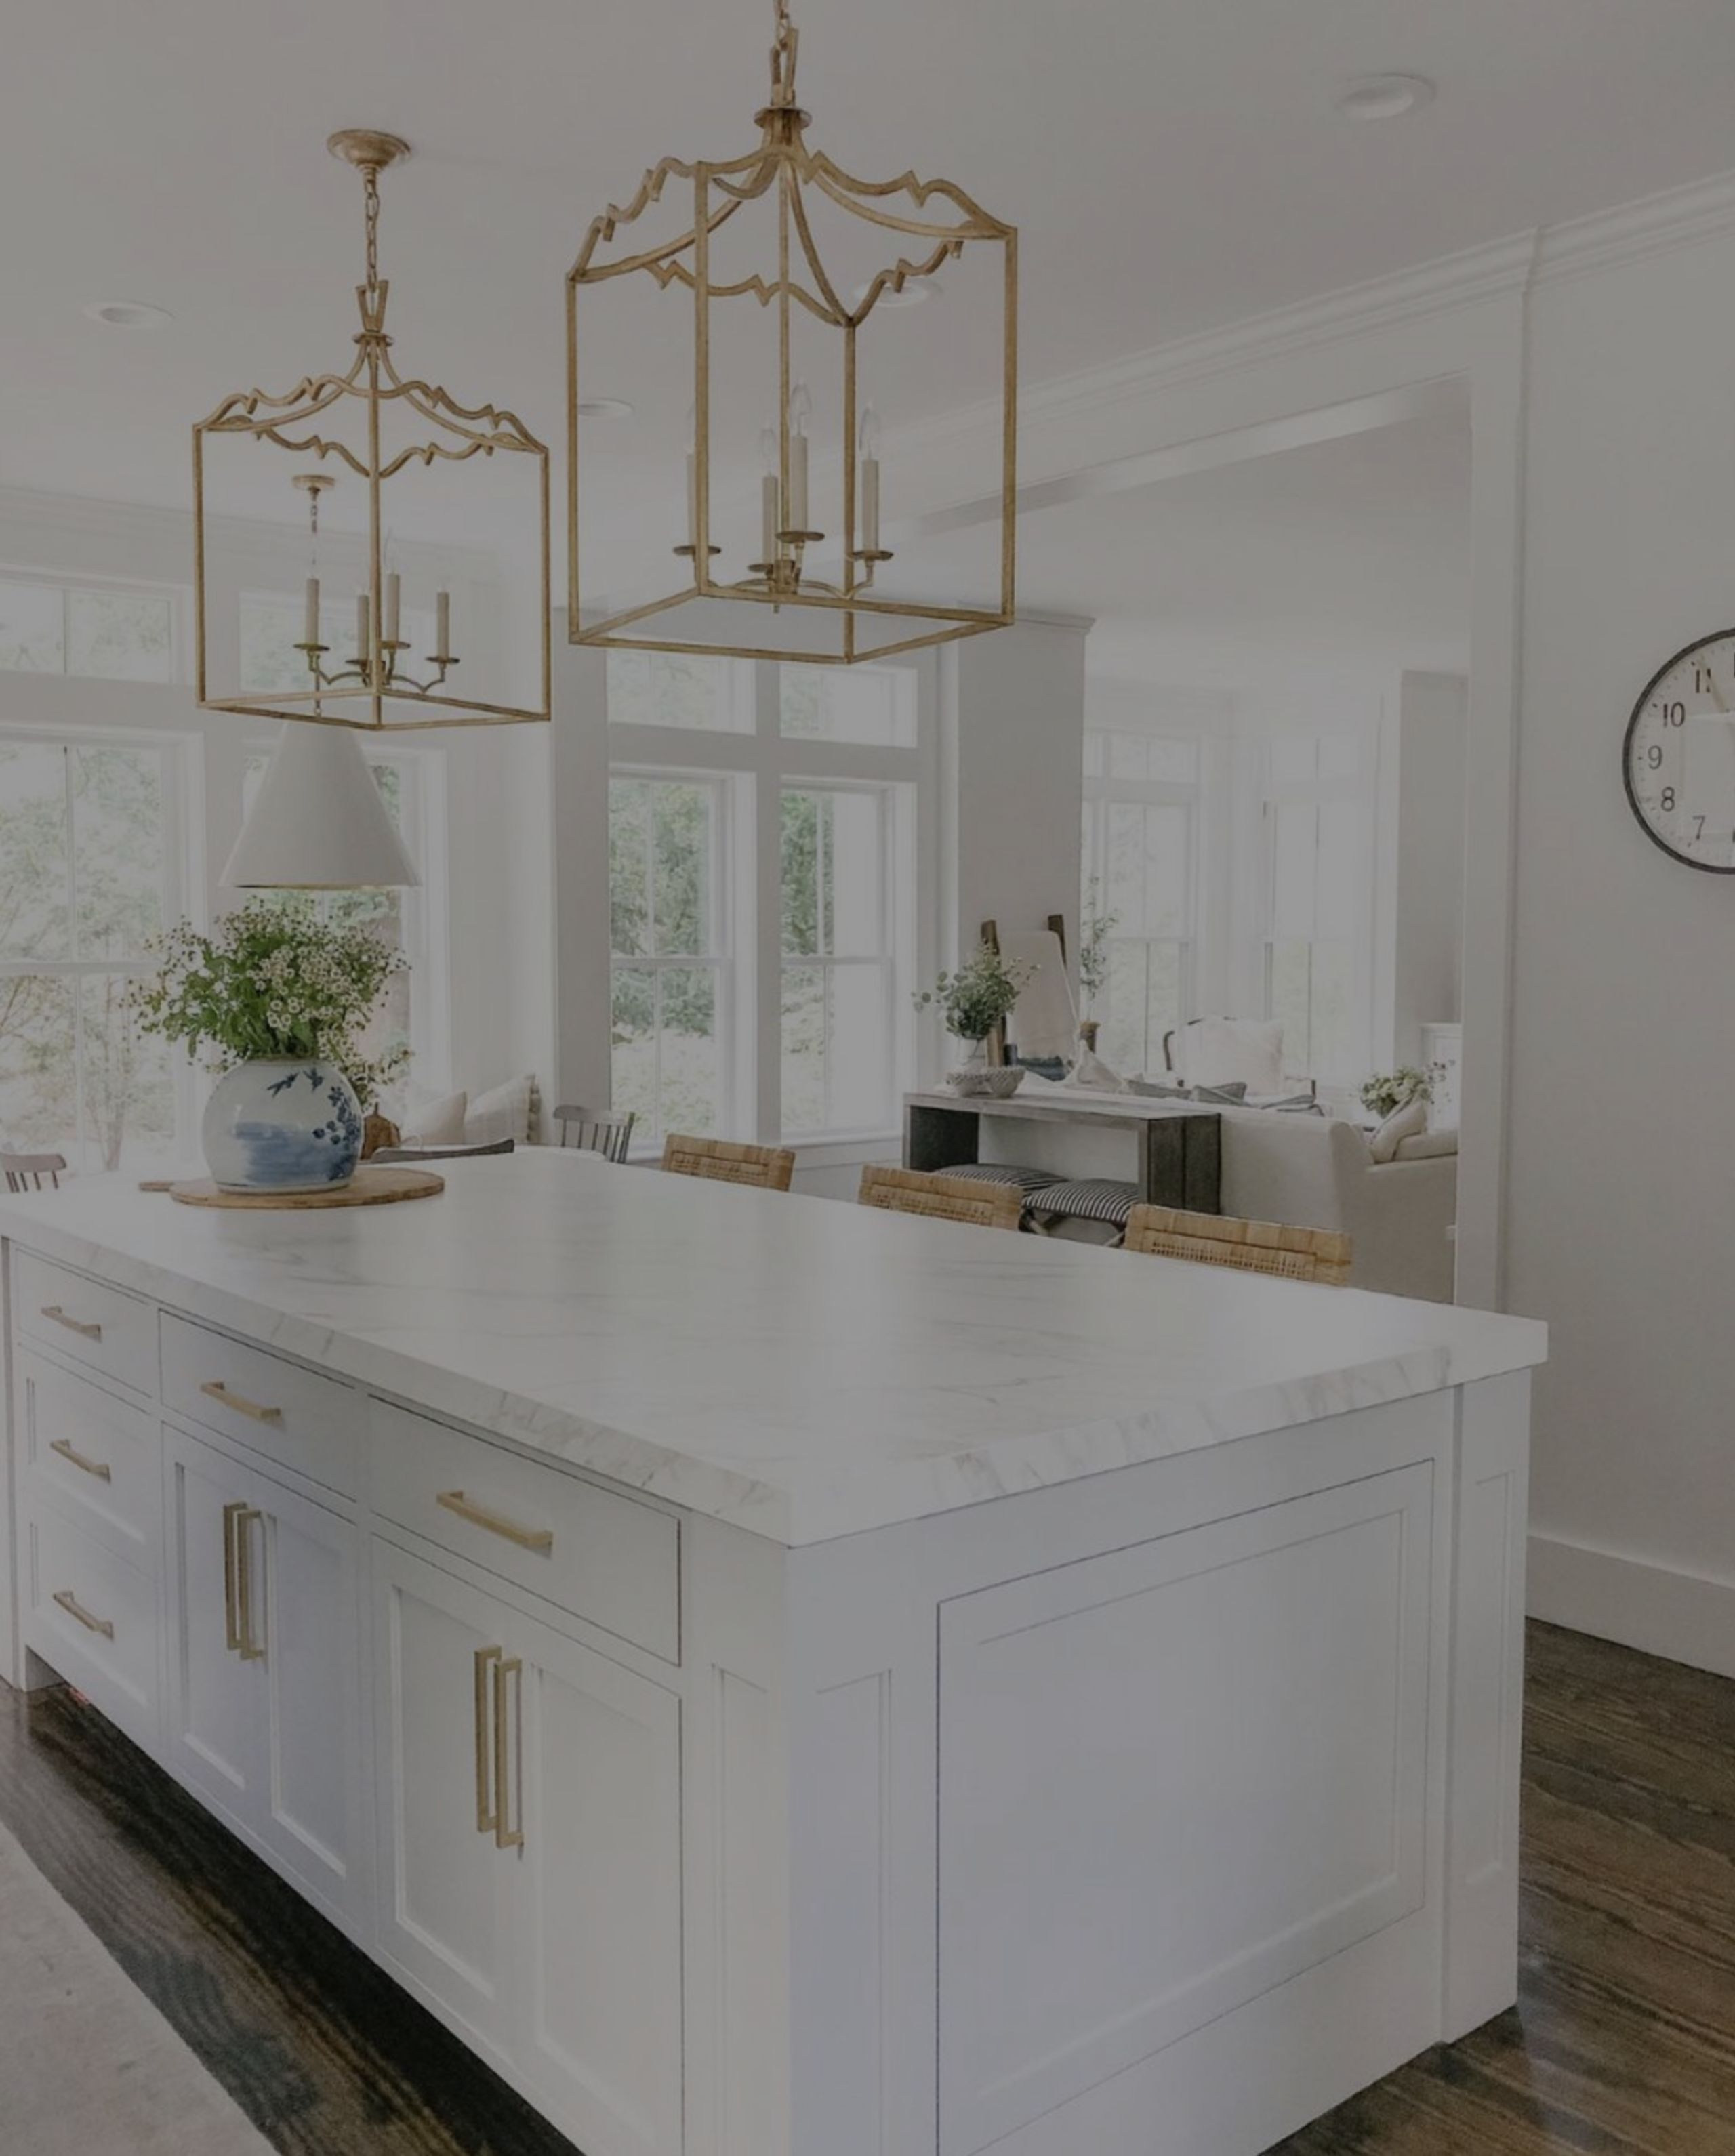 Should I Remodel or Sell?